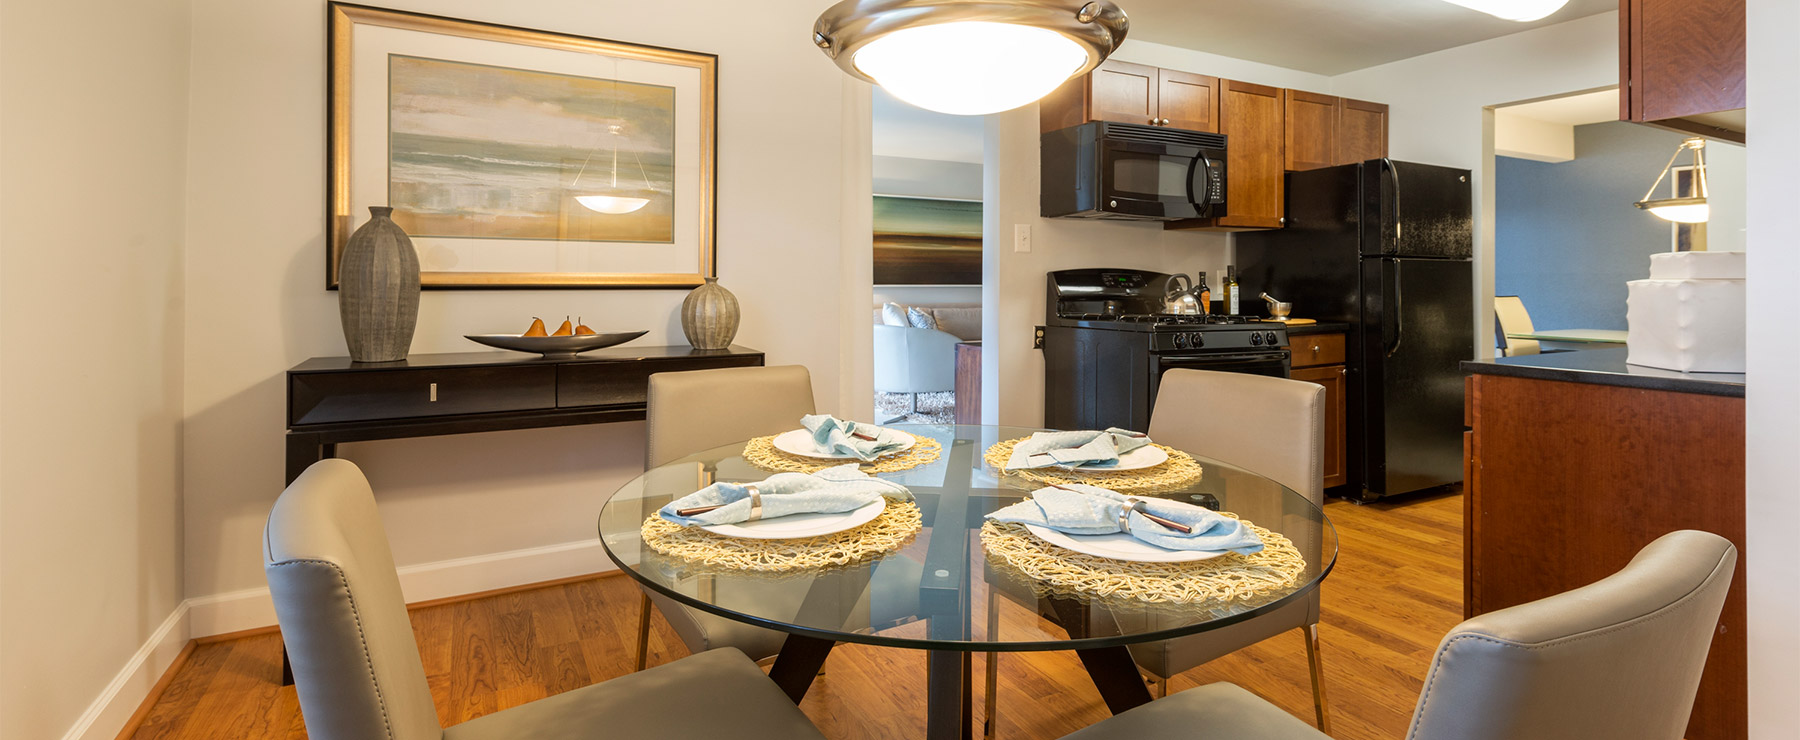 Rooms And Apartments For Rent In Maryland